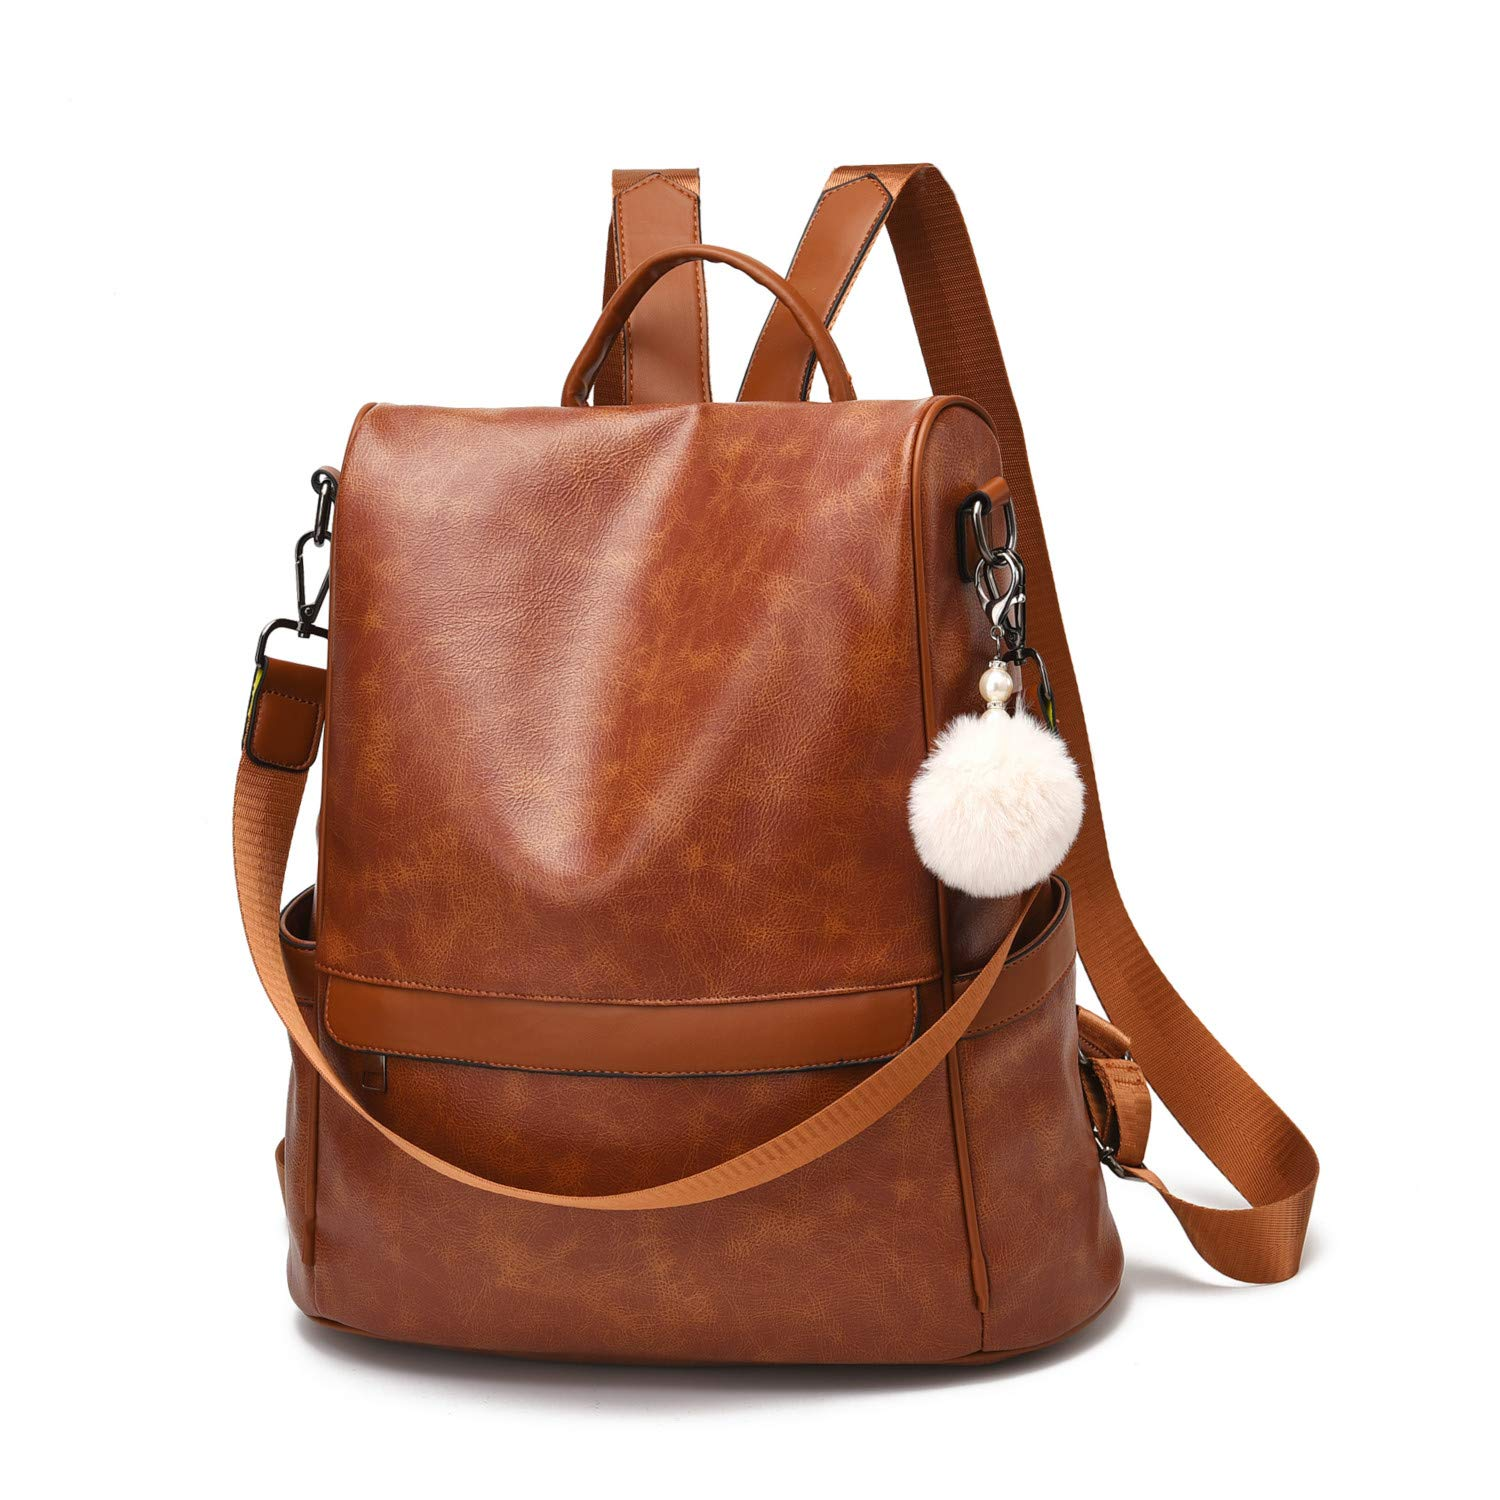 Women Backpack Purse PU Leather Anti-theft Casual Shoulder Bag Fashion Ladies Satchel Bags (Tan-Large) by Cheruty